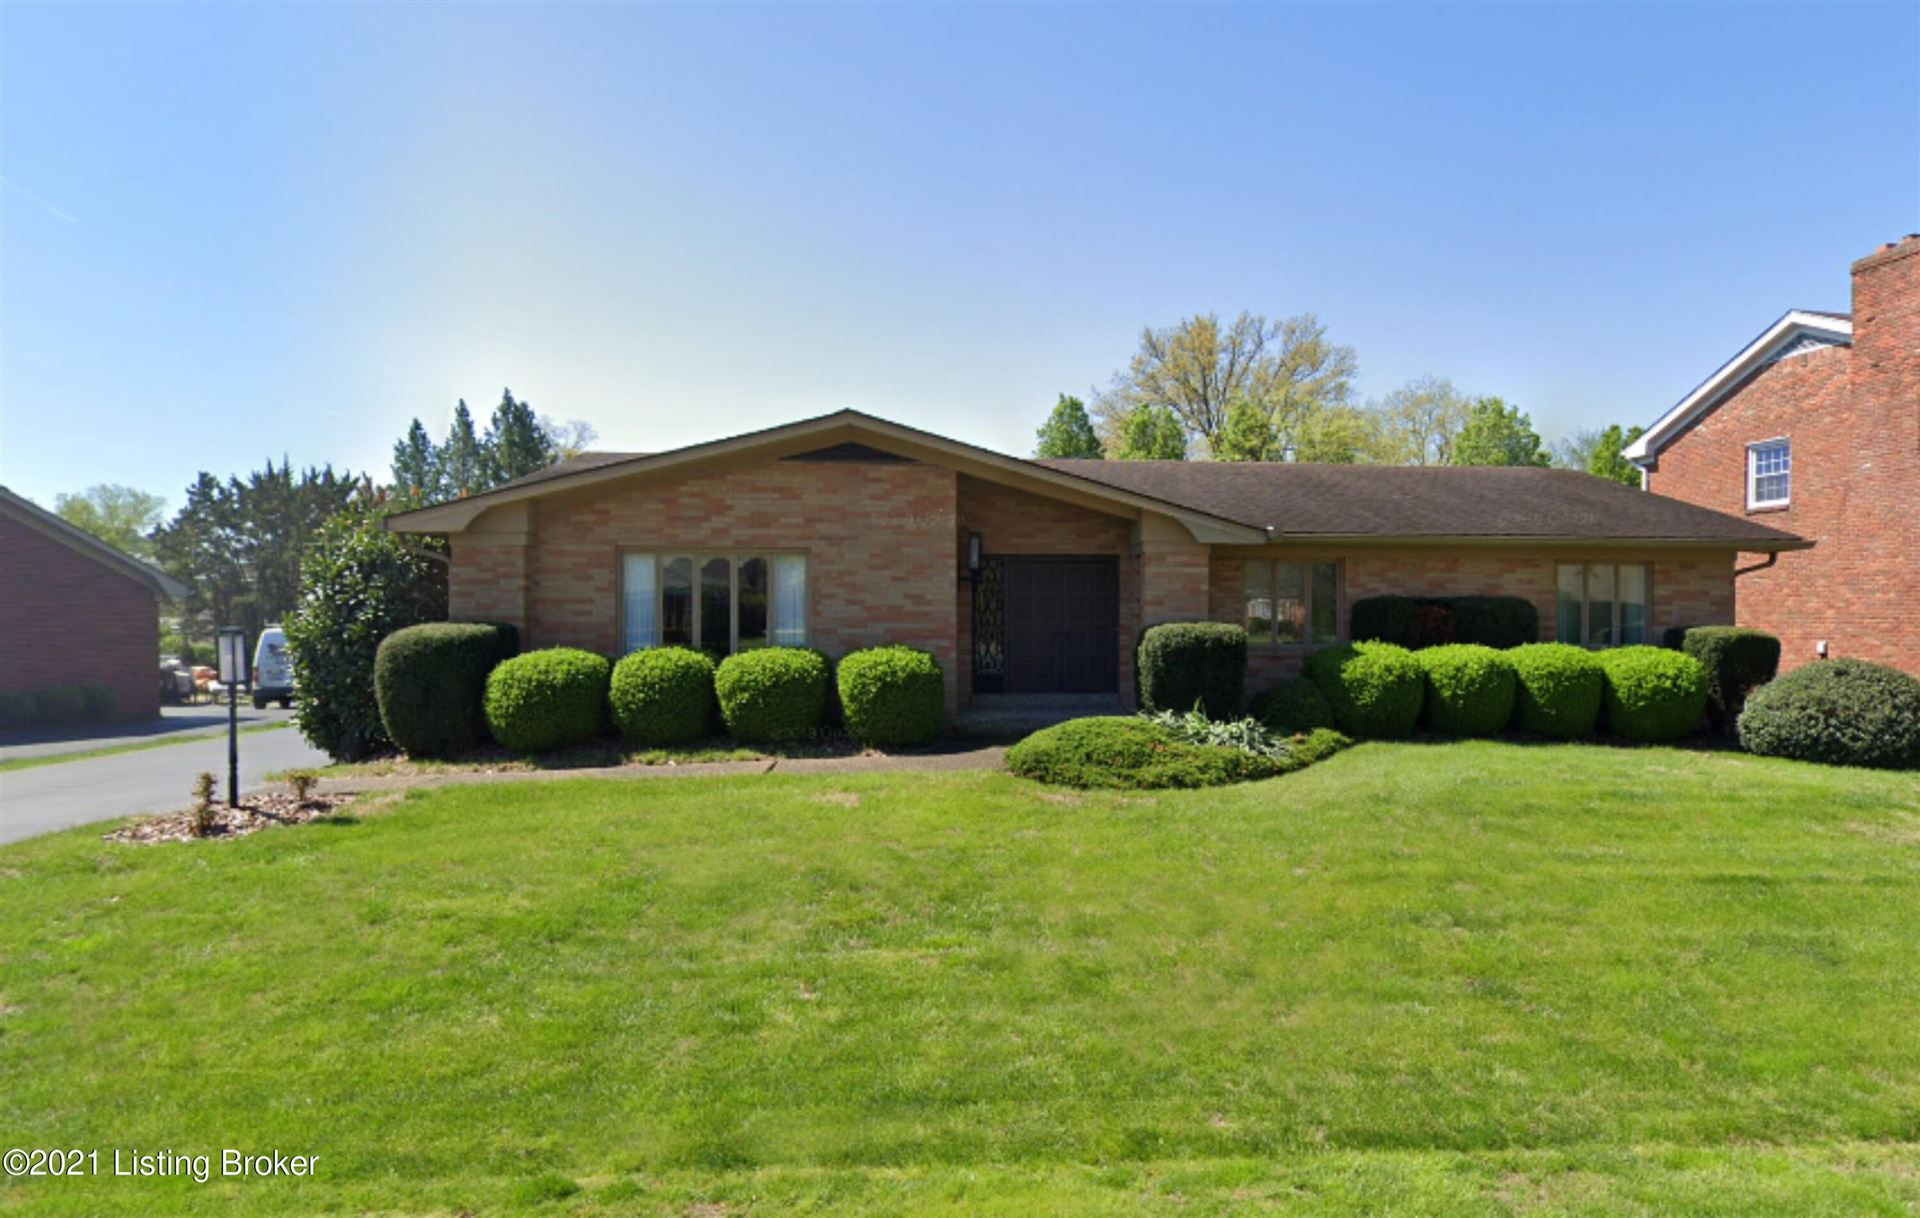 Photo for 3008 Hayfield Dr, Louisville, KY 40205 (MLS # 1598532)